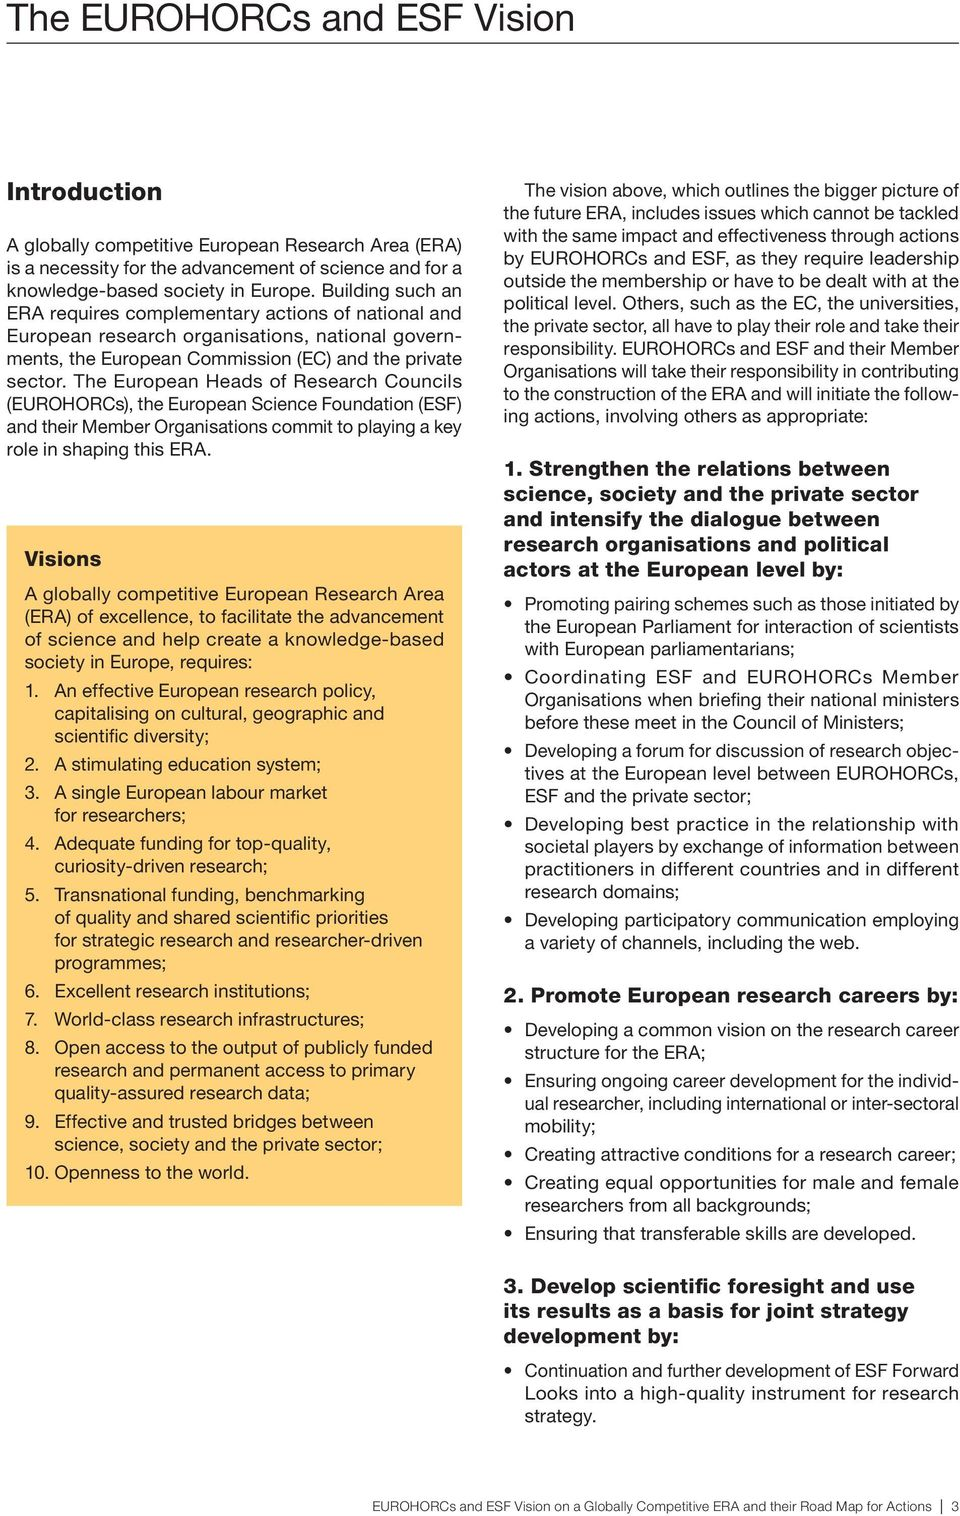 The European Heads of Research Councils (EUROHORCs), the European Science Foundation (ESF) and their Member Organisations commit to playing a key role in shaping this ERA.